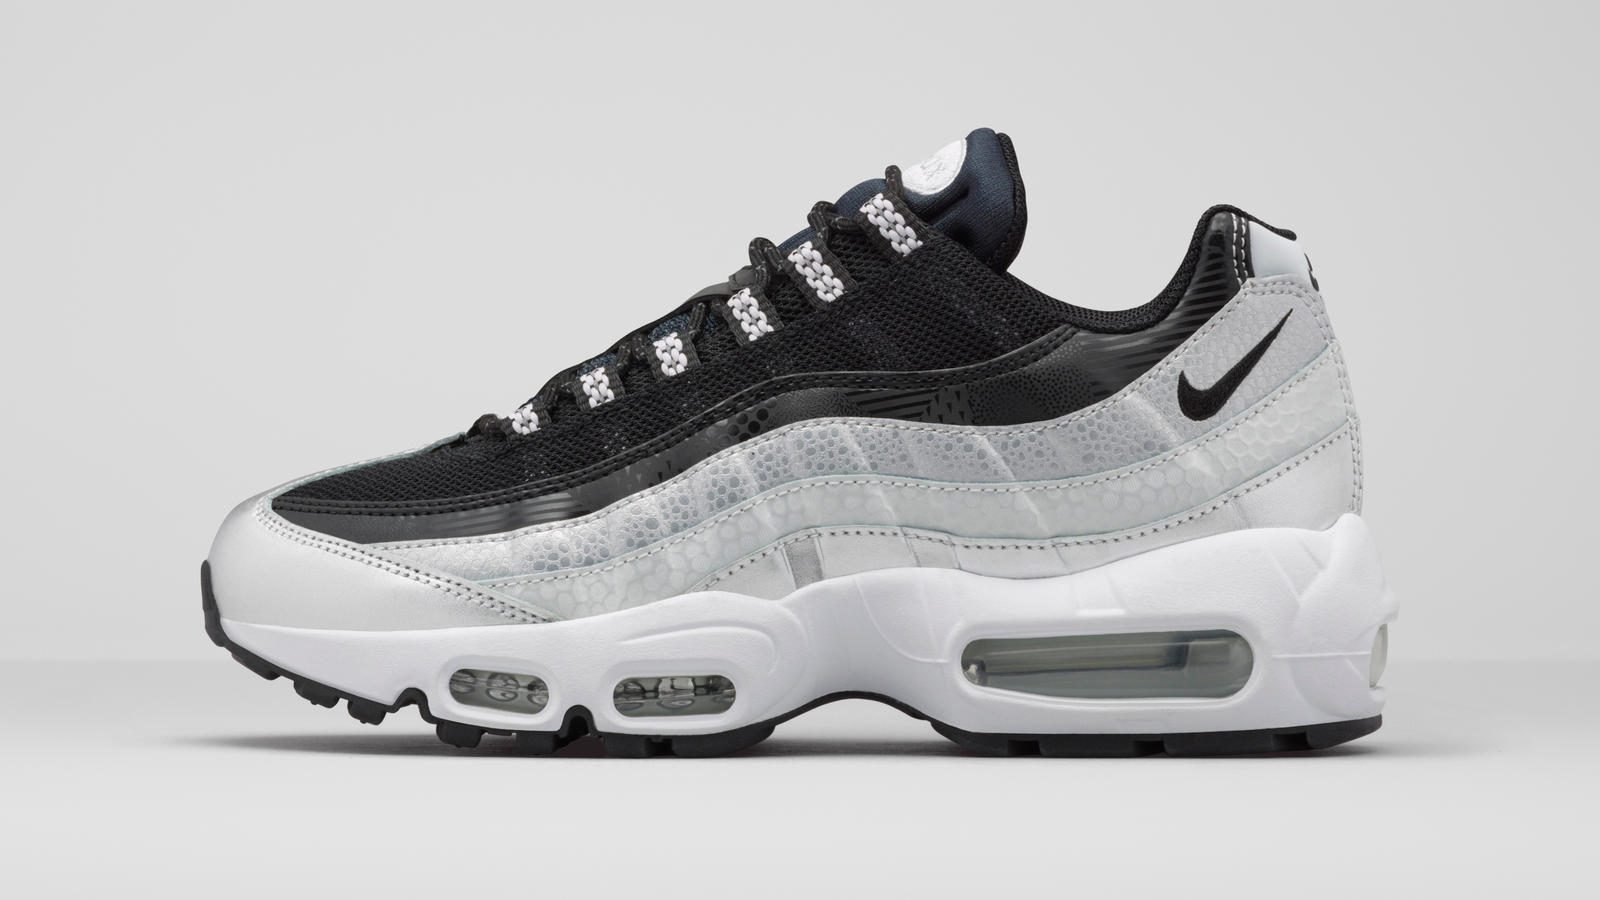 huge discount 2db46 1757f ... discount nike air max 95 mexican blanket mobile gallery image . 18475  2dbc4